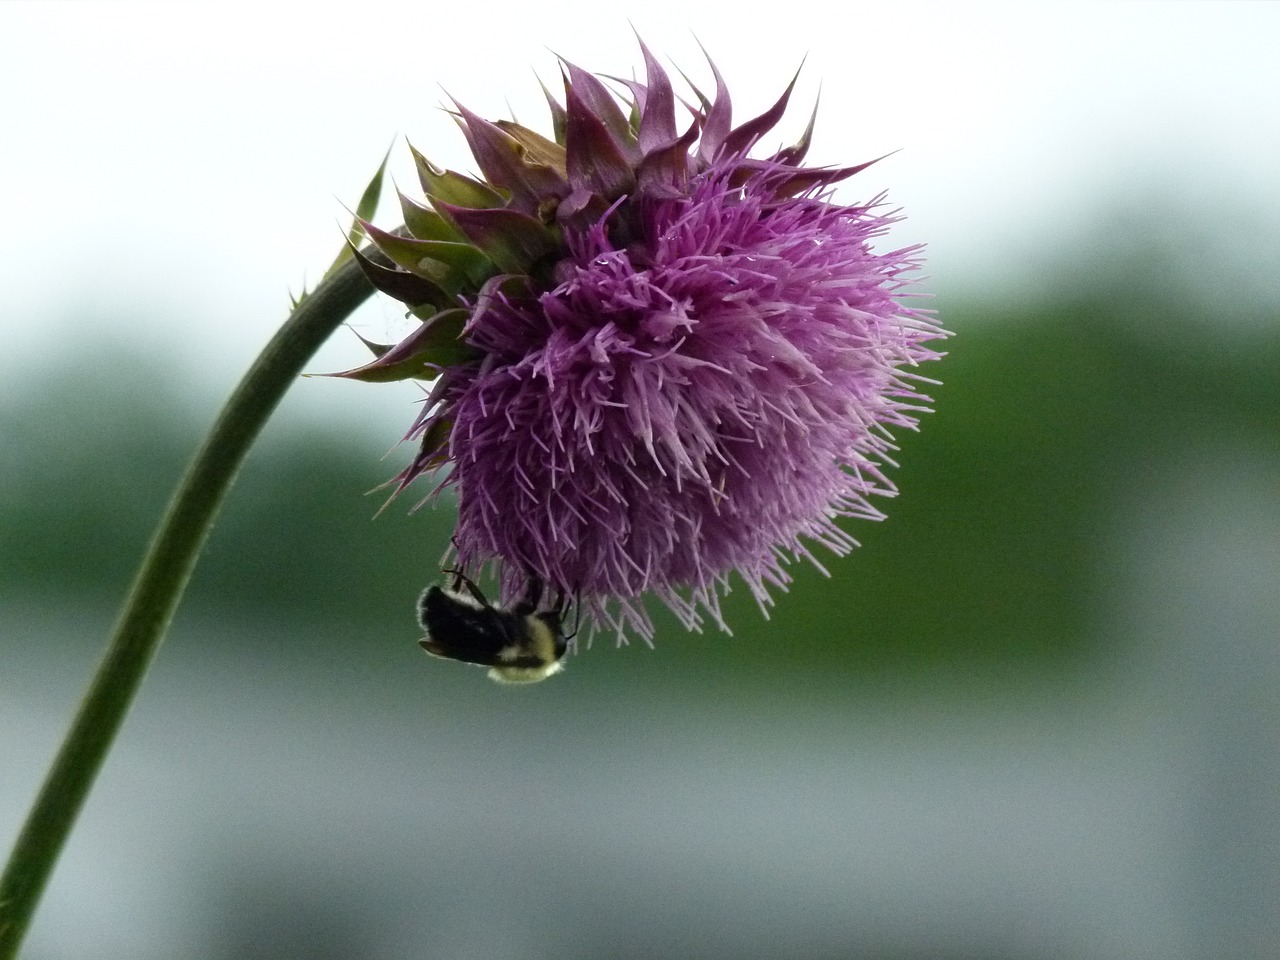 bumble bee,bee,bumble,thistle,milk thistle,insect,flower,pollination,bumble-bee,honey,free pictures, free photos, free images, royalty free, free illustrations, public domain